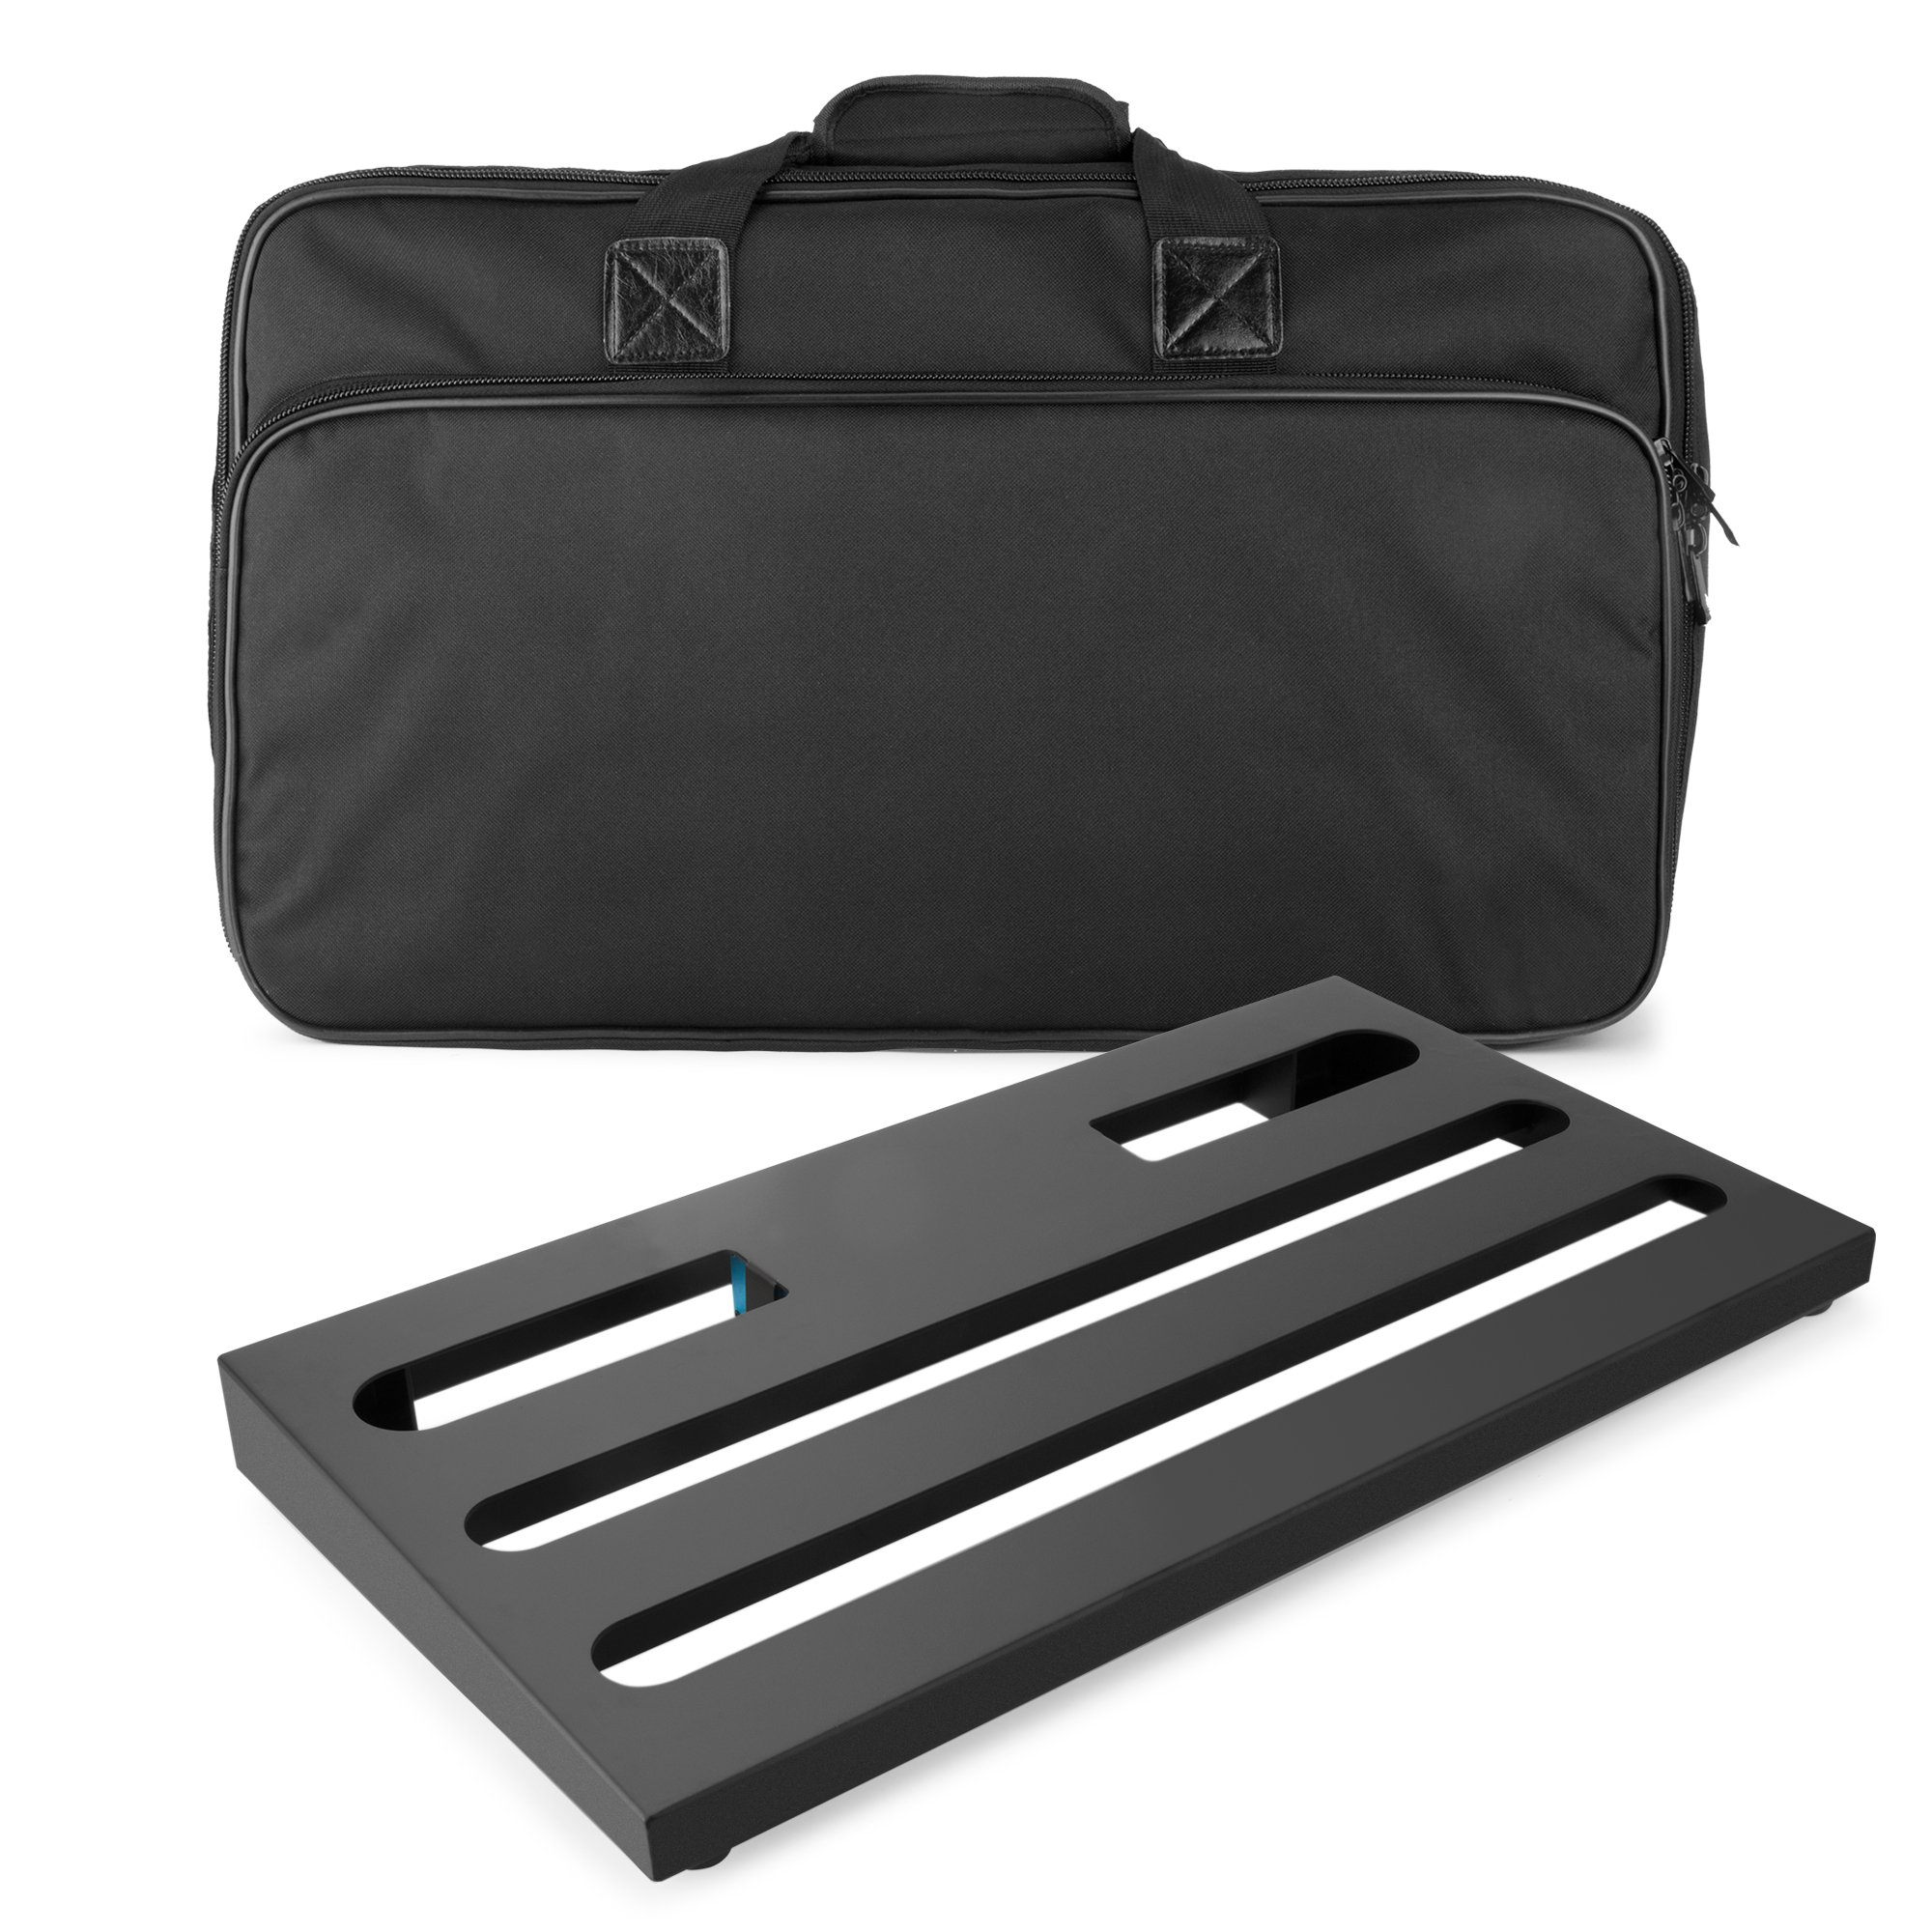 Caline Guitar Pedal Board 22'' x 12'' x 2.6'' with Carry Bag Aluminum Alloy PedalBoard Case CB-105, Black